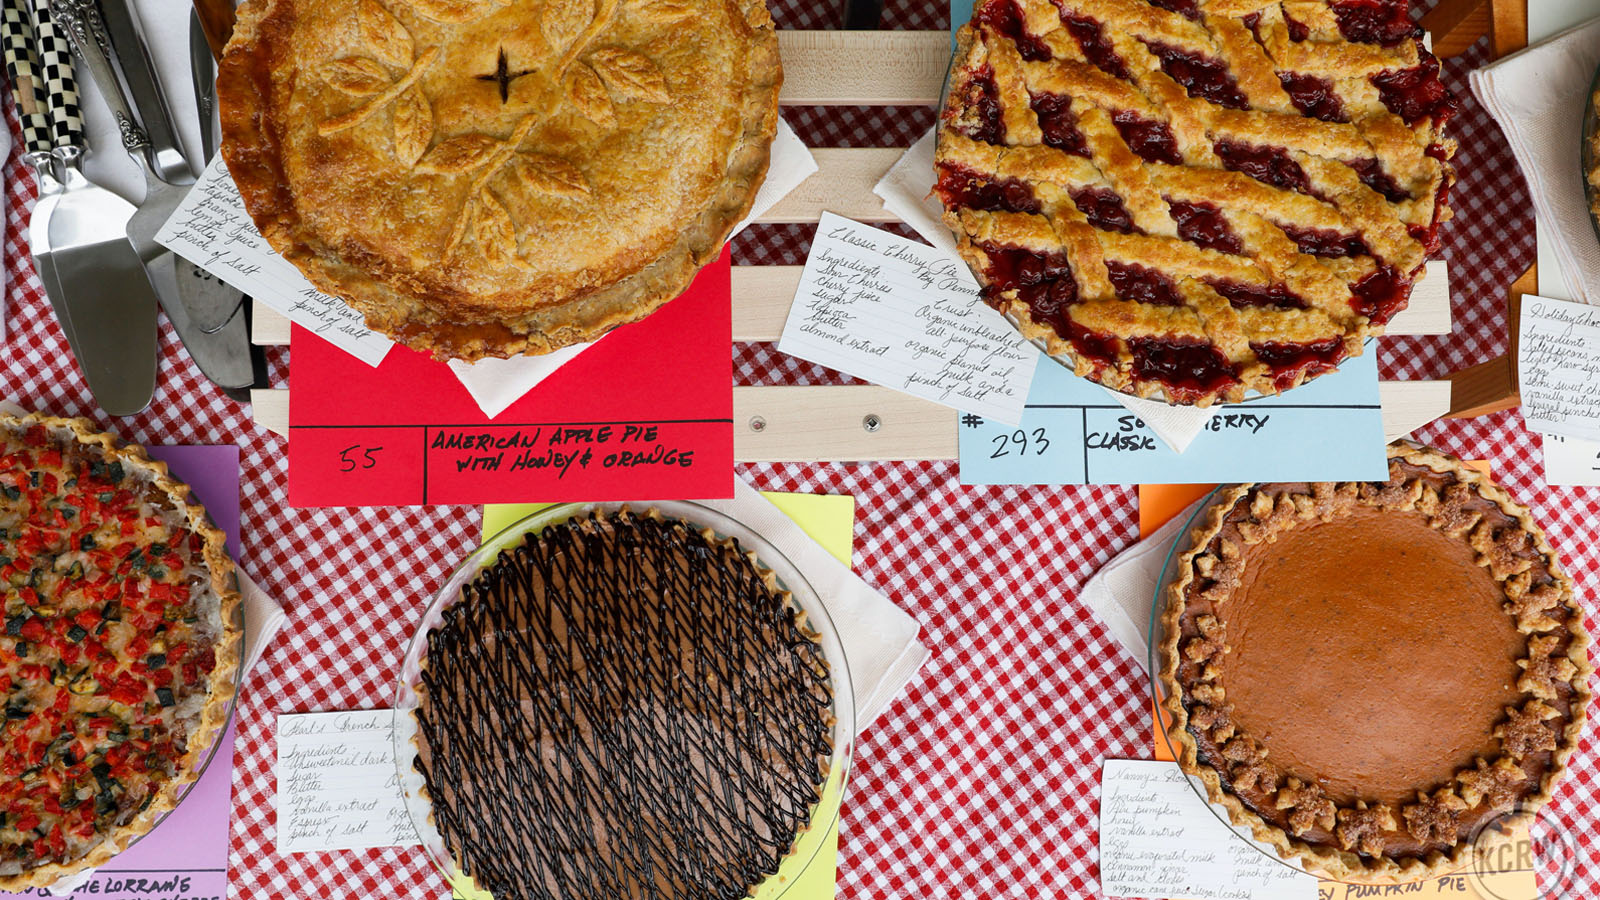 good-foods-annual-pie-contest-at-ucla-2.jpg